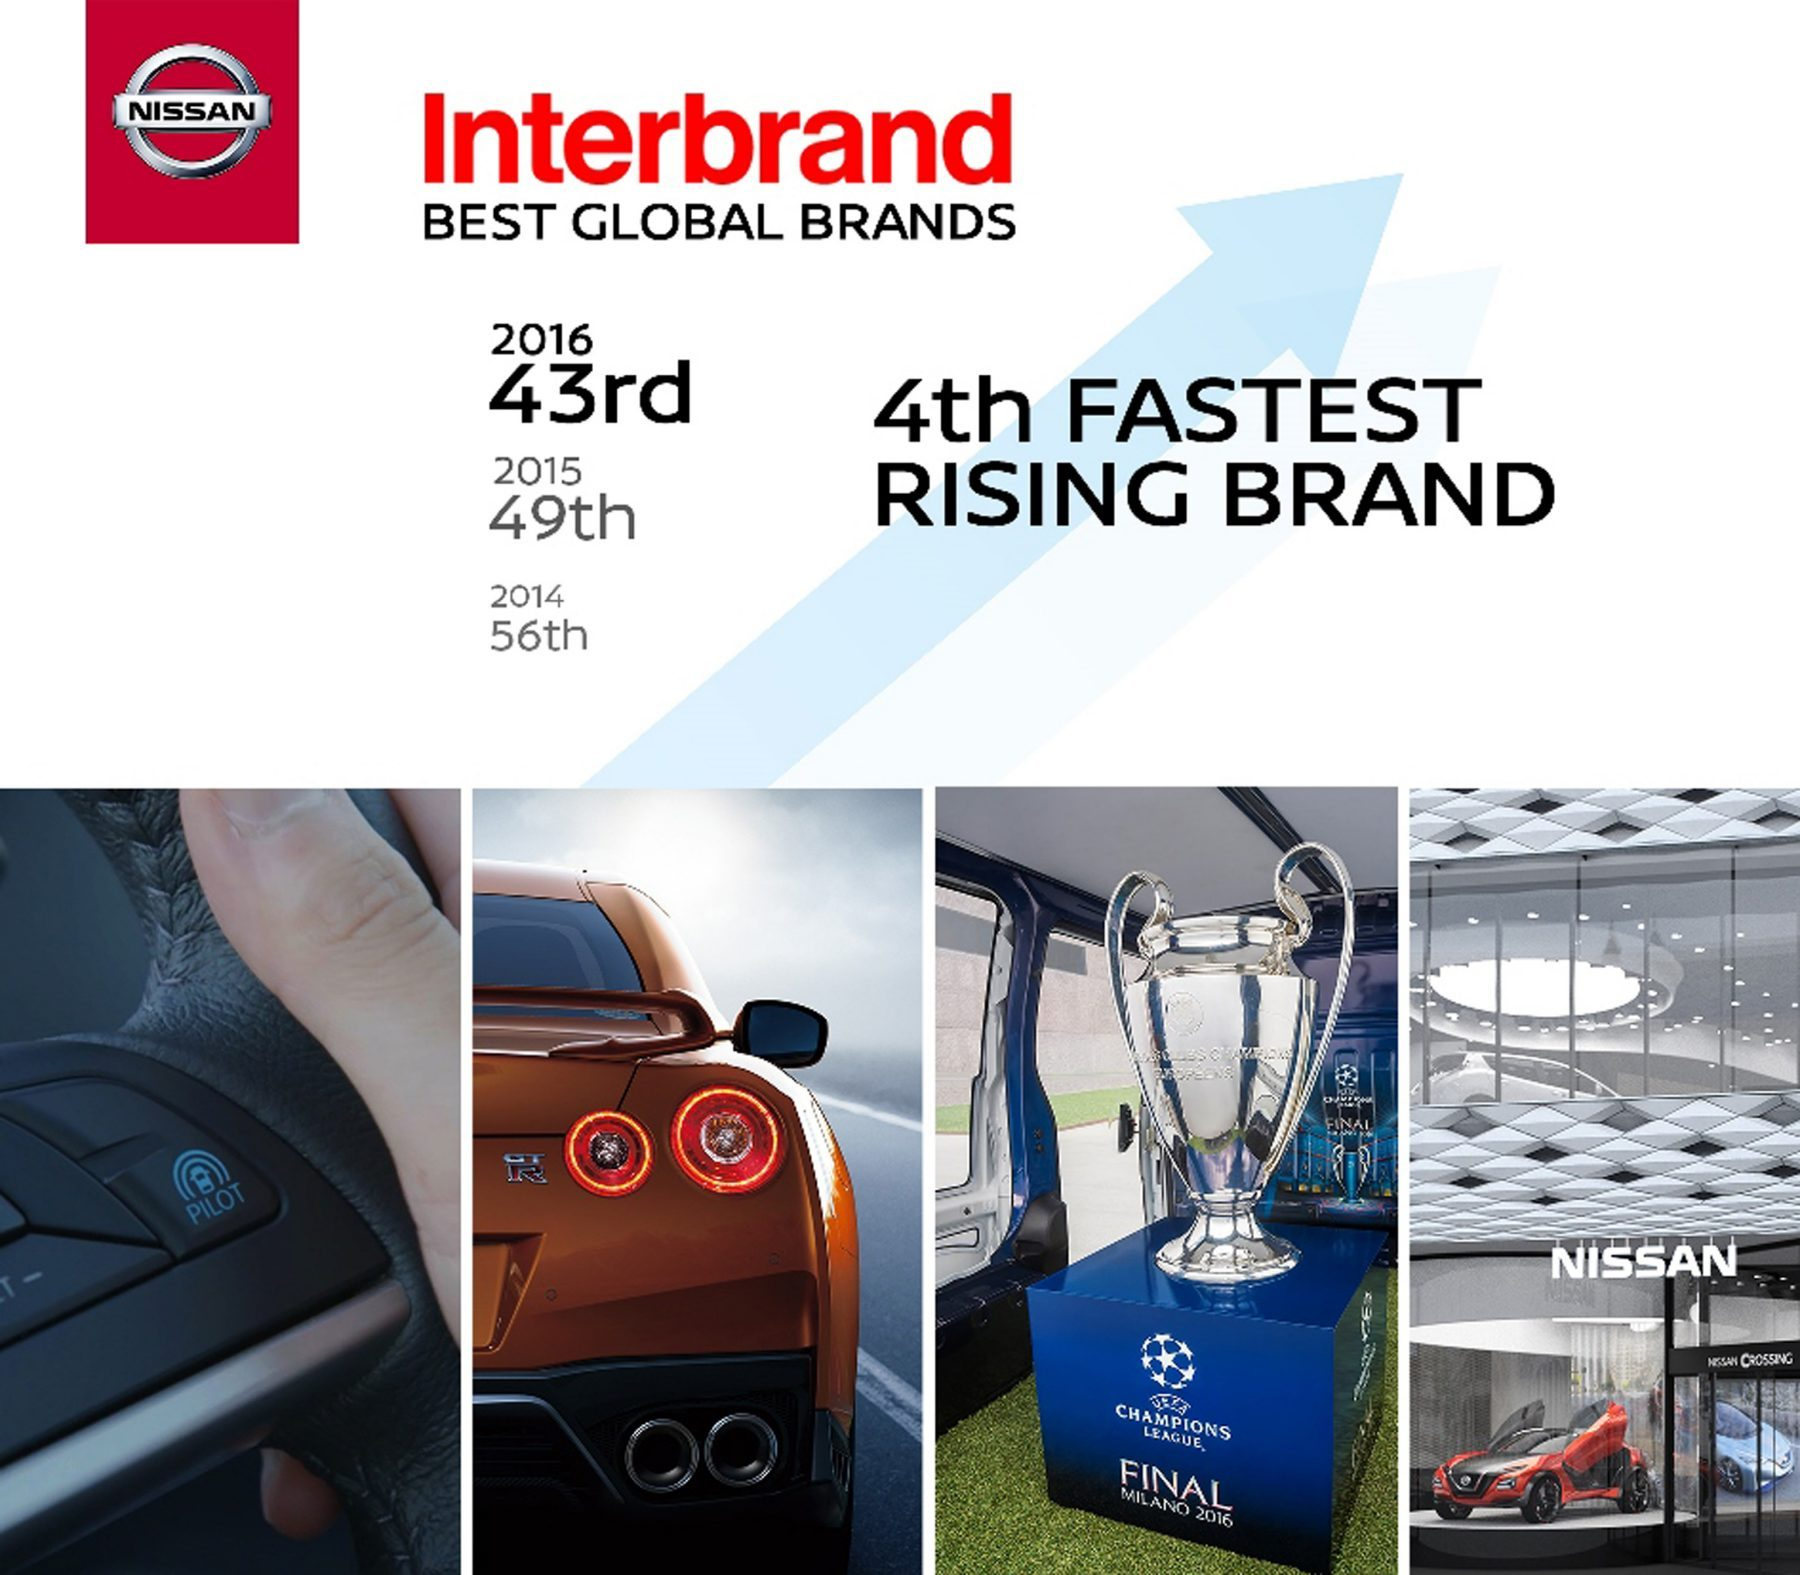 Nissan Once Again Recognized as One of the World's Top Brands